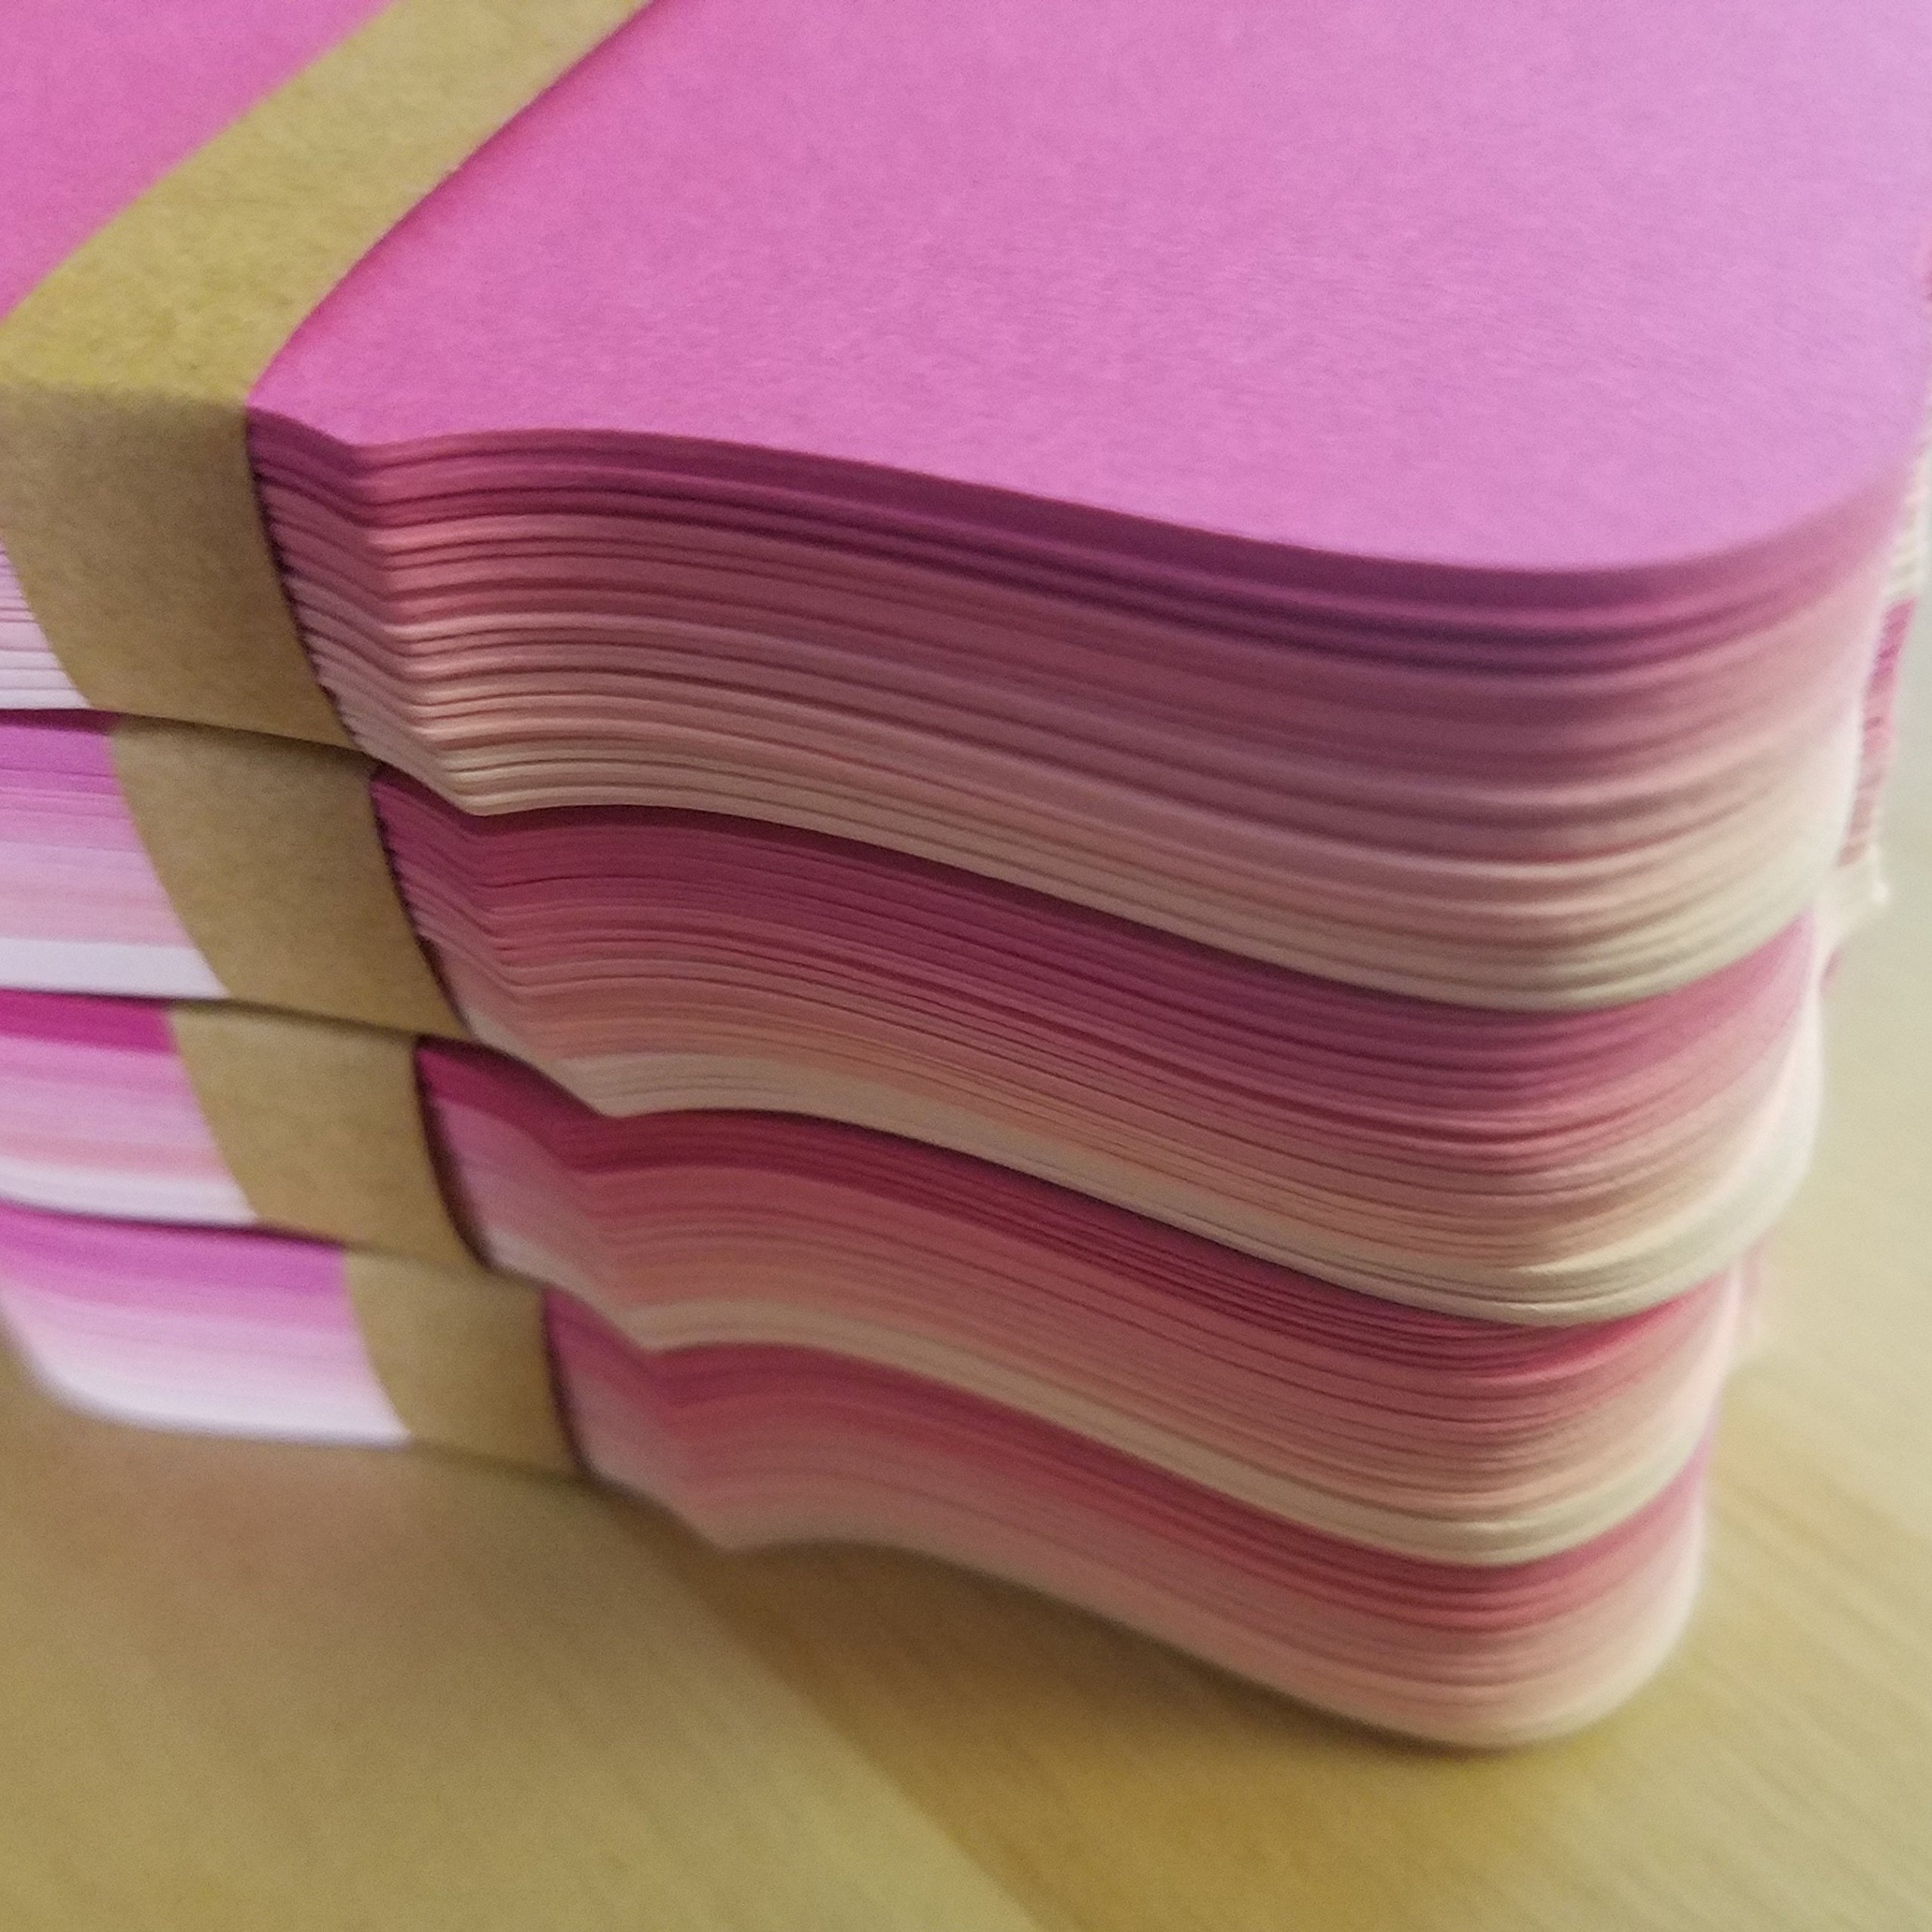 Rose Pink Ombre Color Note Cards / Place Cards - size (2'' x 3.5'') - Set of 50